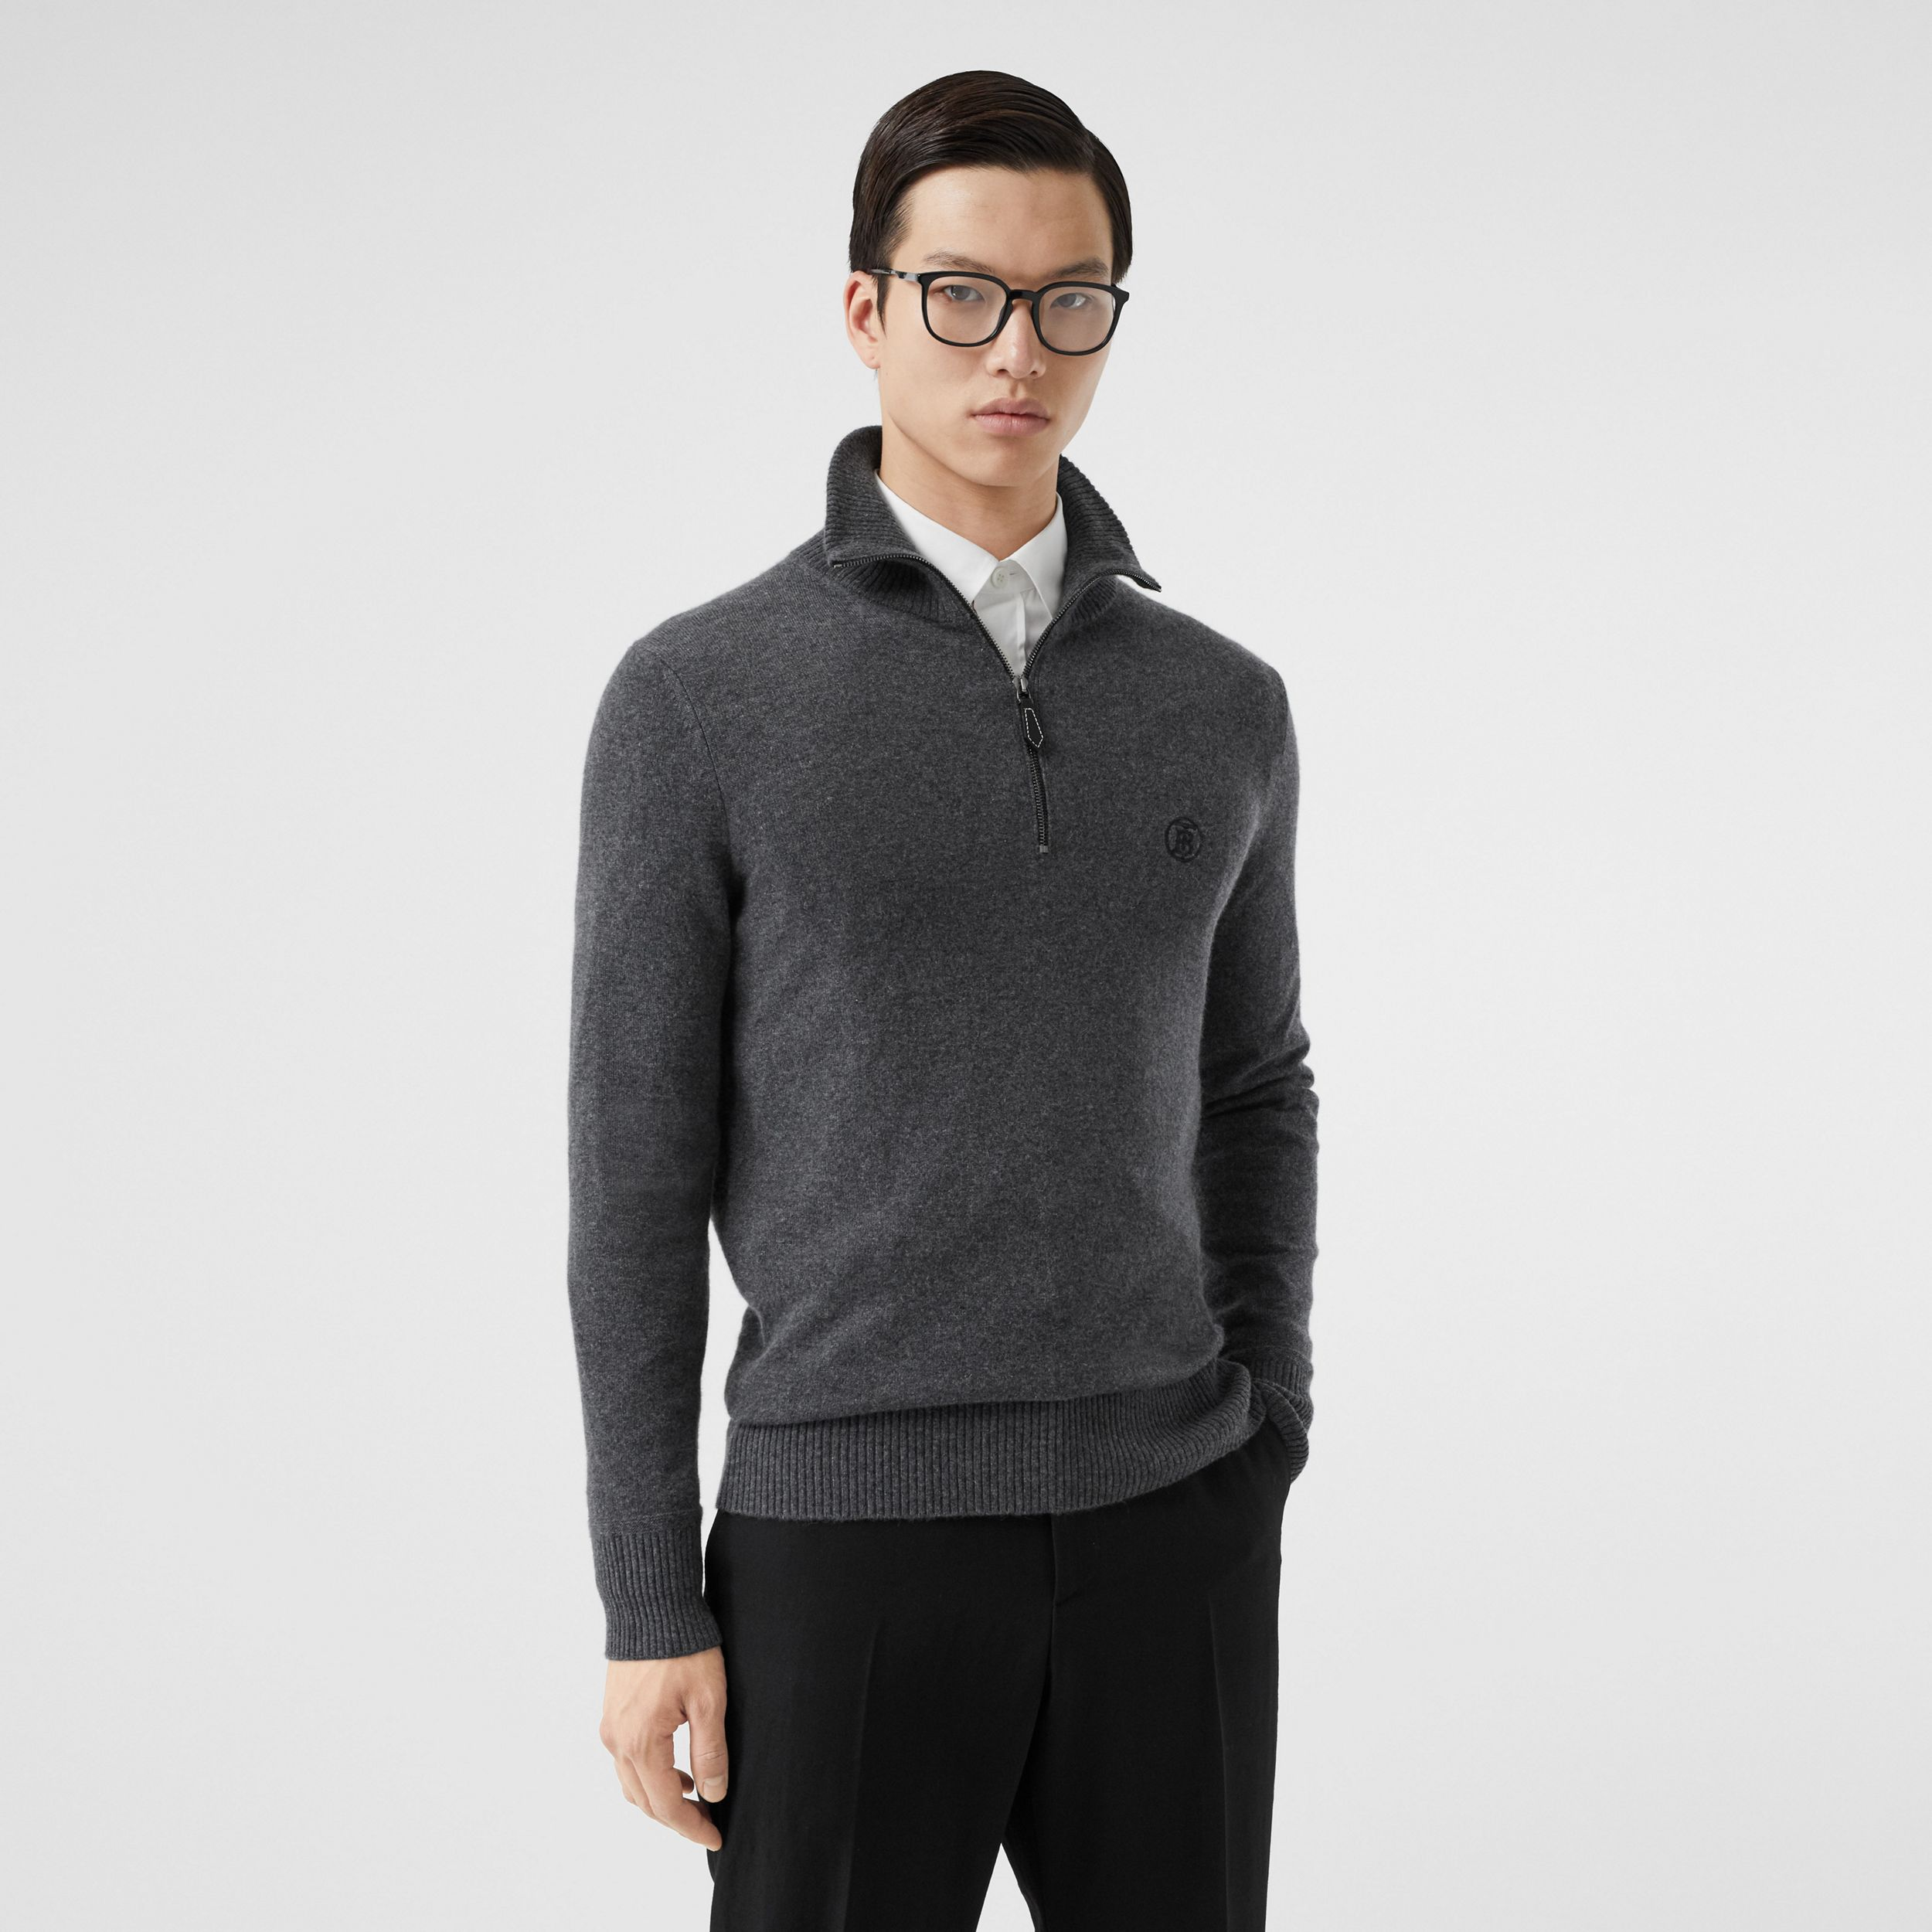 Monogram Motif Cashmere Funnel Neck Sweater in Steel Grey - Men | Burberry - 1